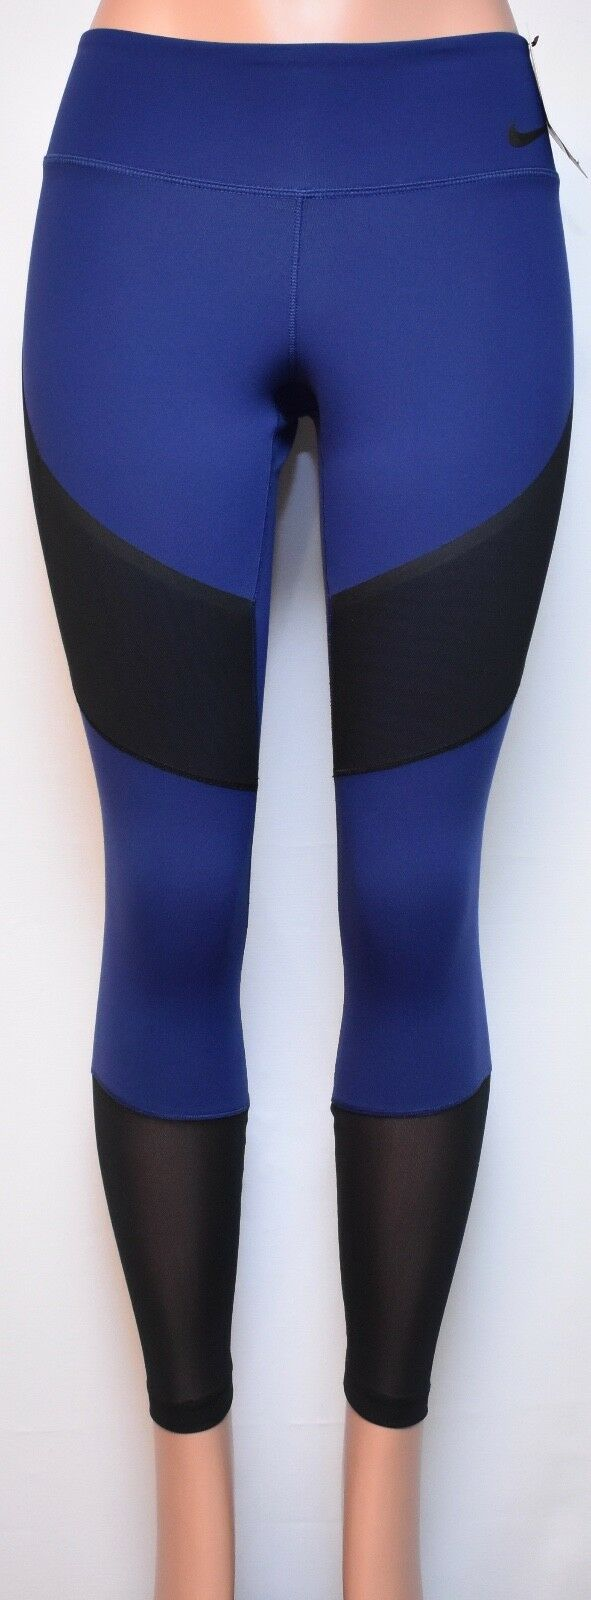 NIKE Legendary Mid Rise Tight-Fit Active Leggings (833718-429) Small Size